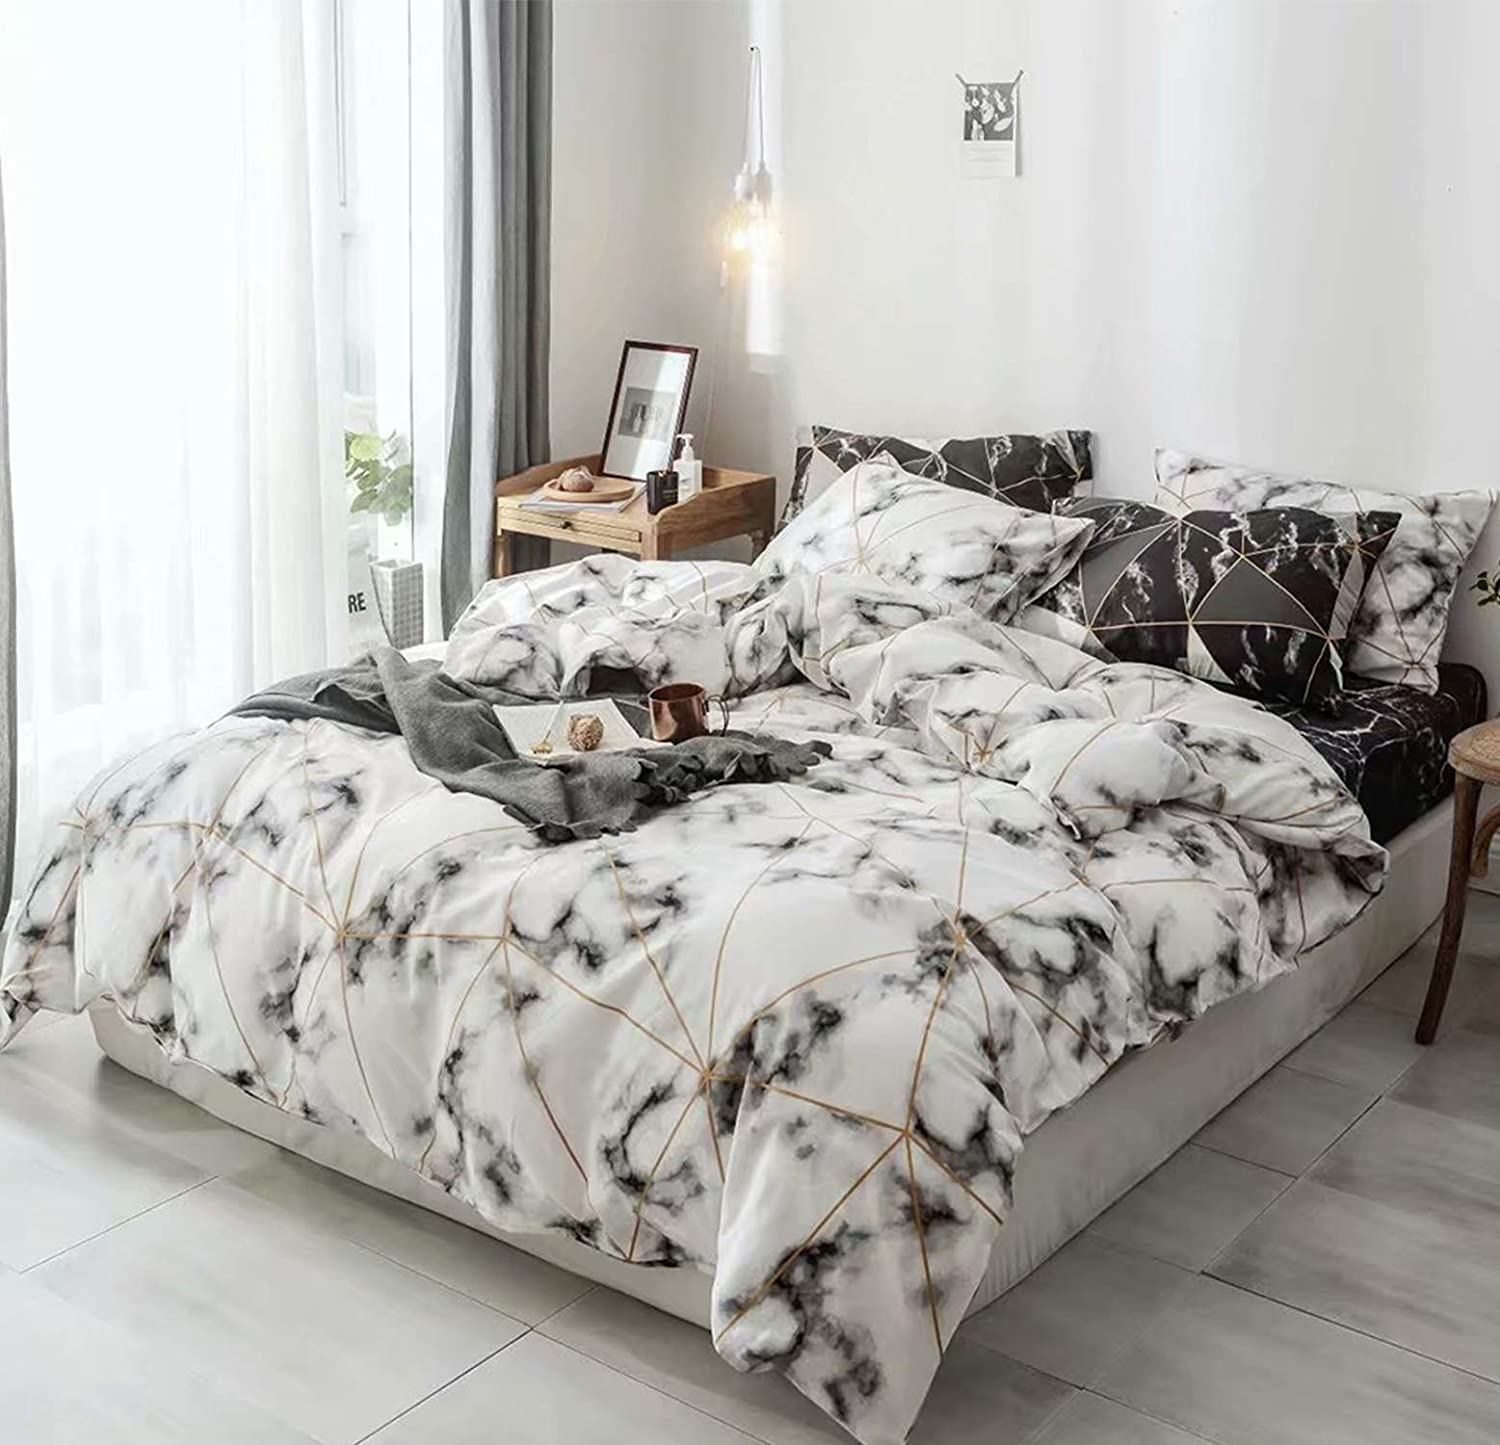 Cottonight White Marble Design Duvet Cover Twin Black and White Bedding Boys Cotton Bedding Set Geometric Abstract Triangle Bedding Duvet Covers 3PC Super Soft